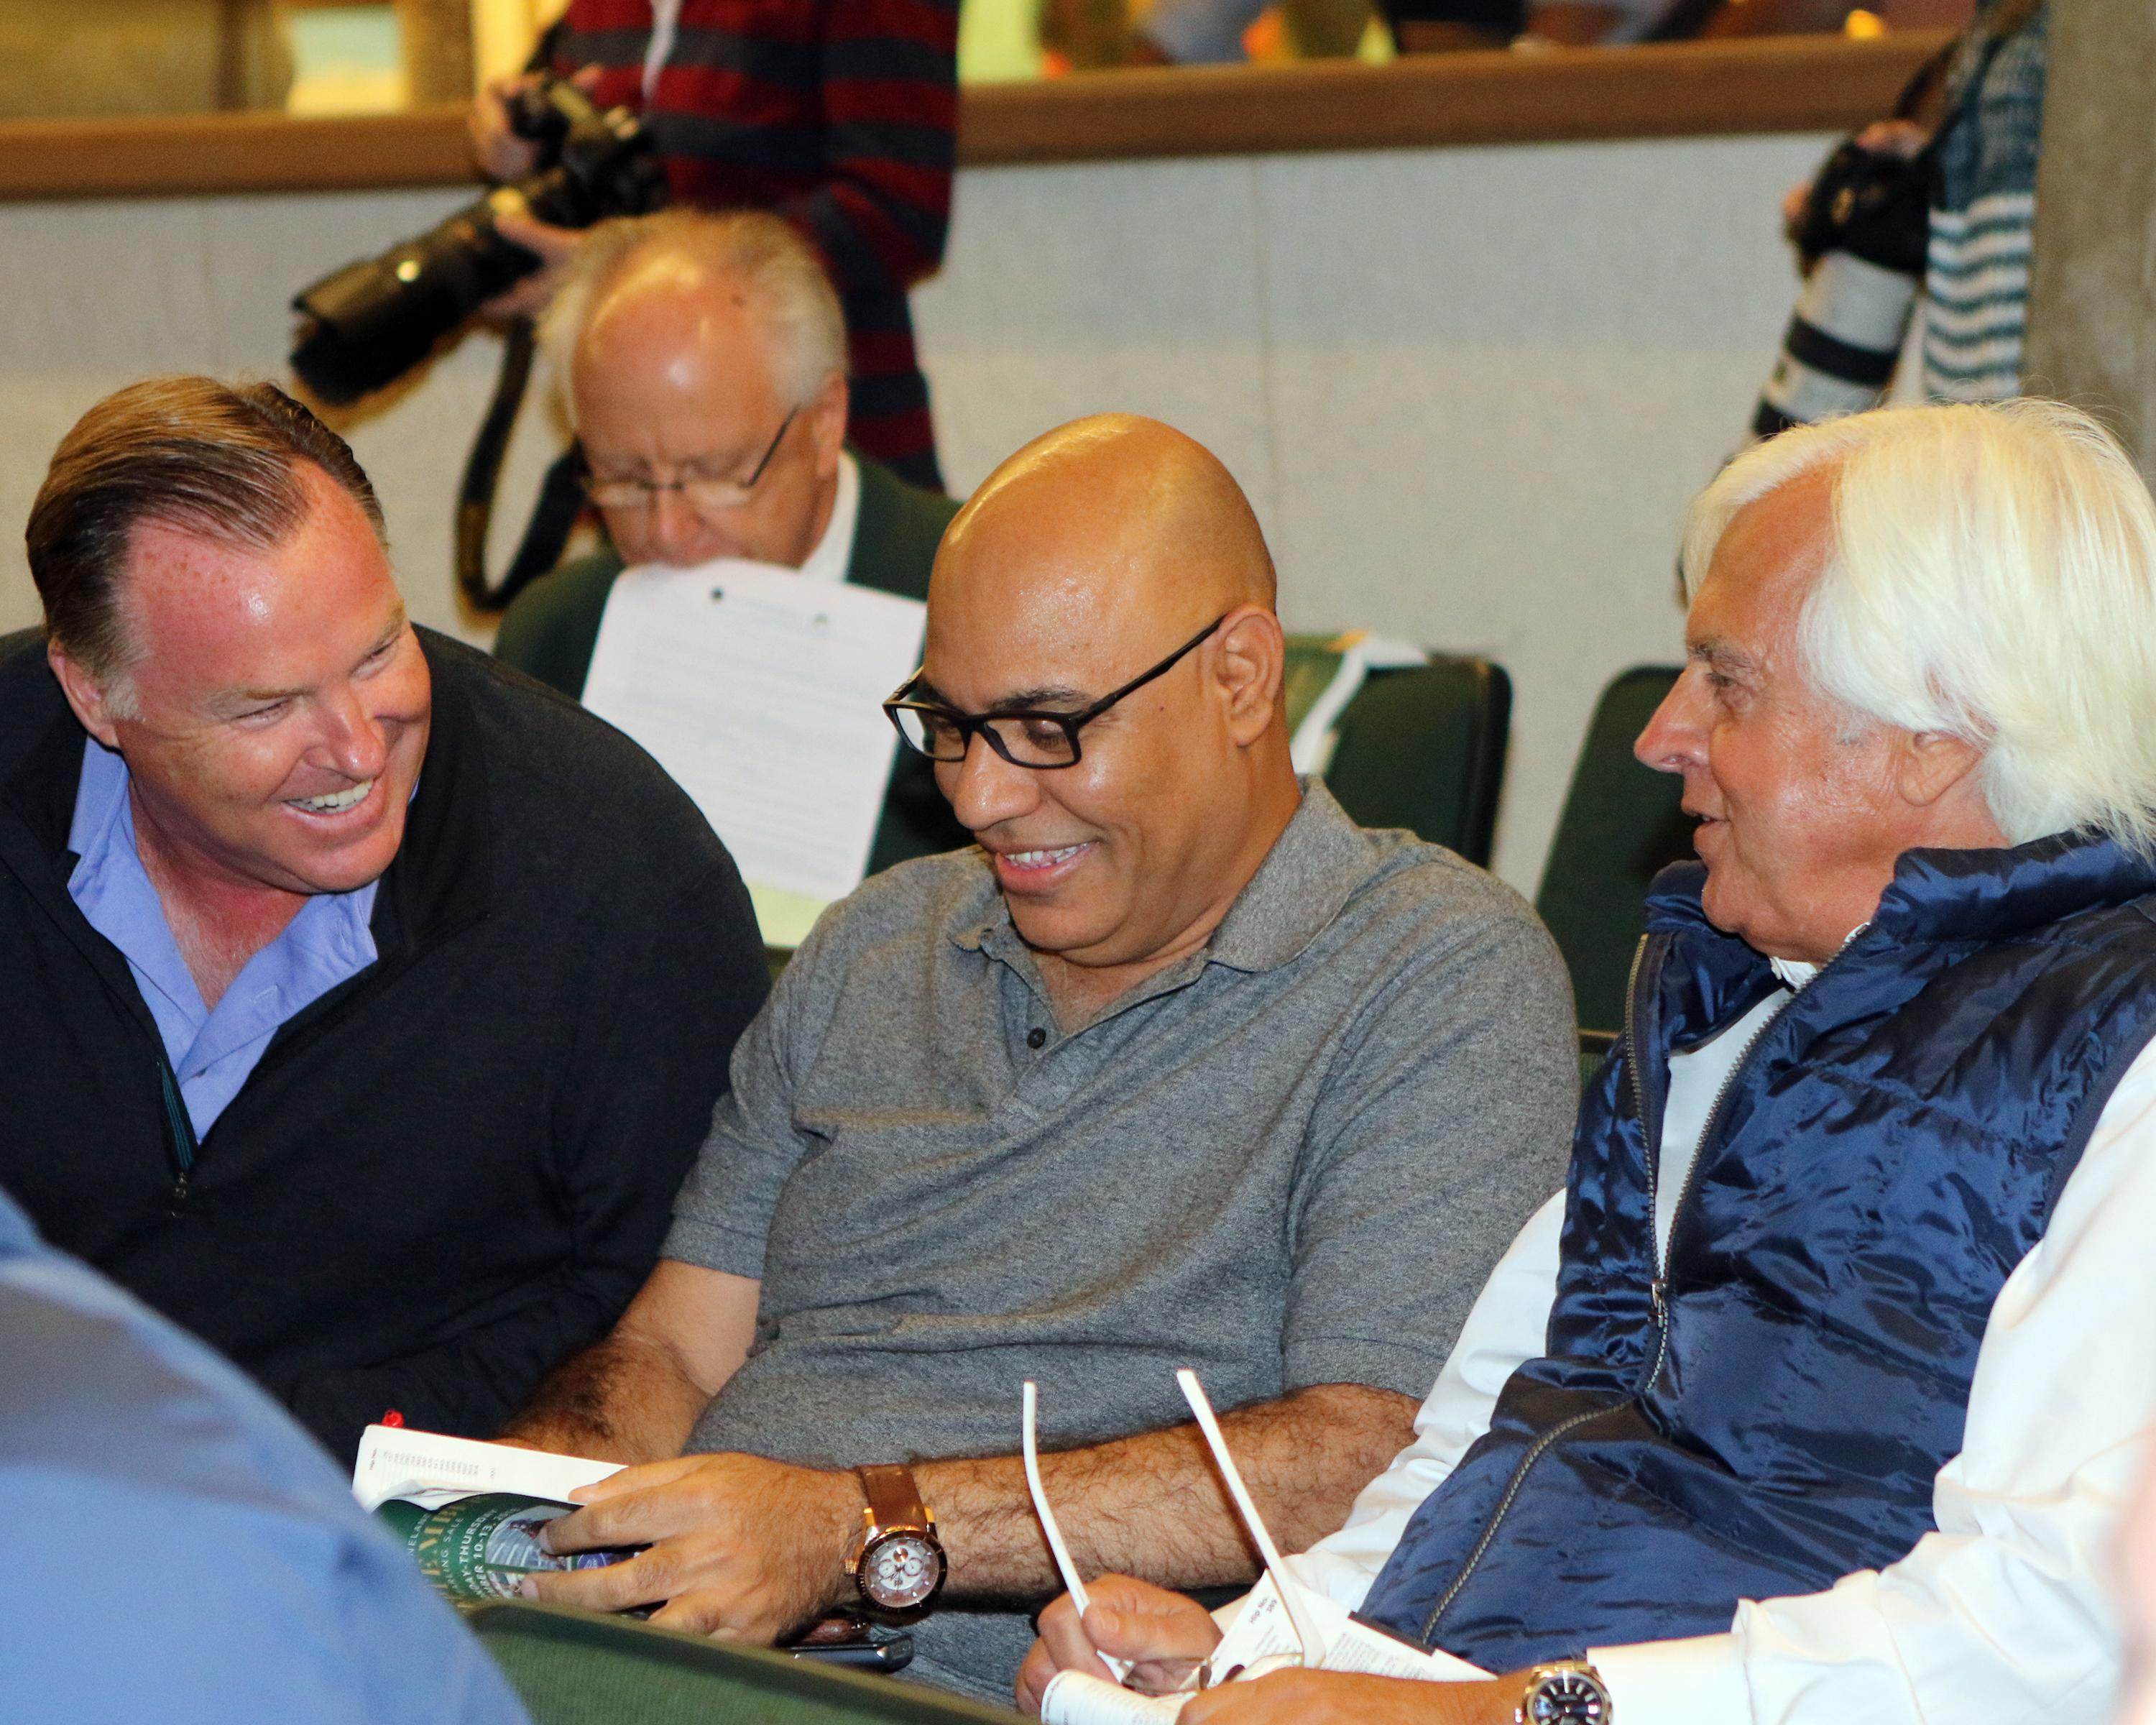 Ludt (left) with Amer Abdulaziz and Bob Baffert at the Keeneland September sale.